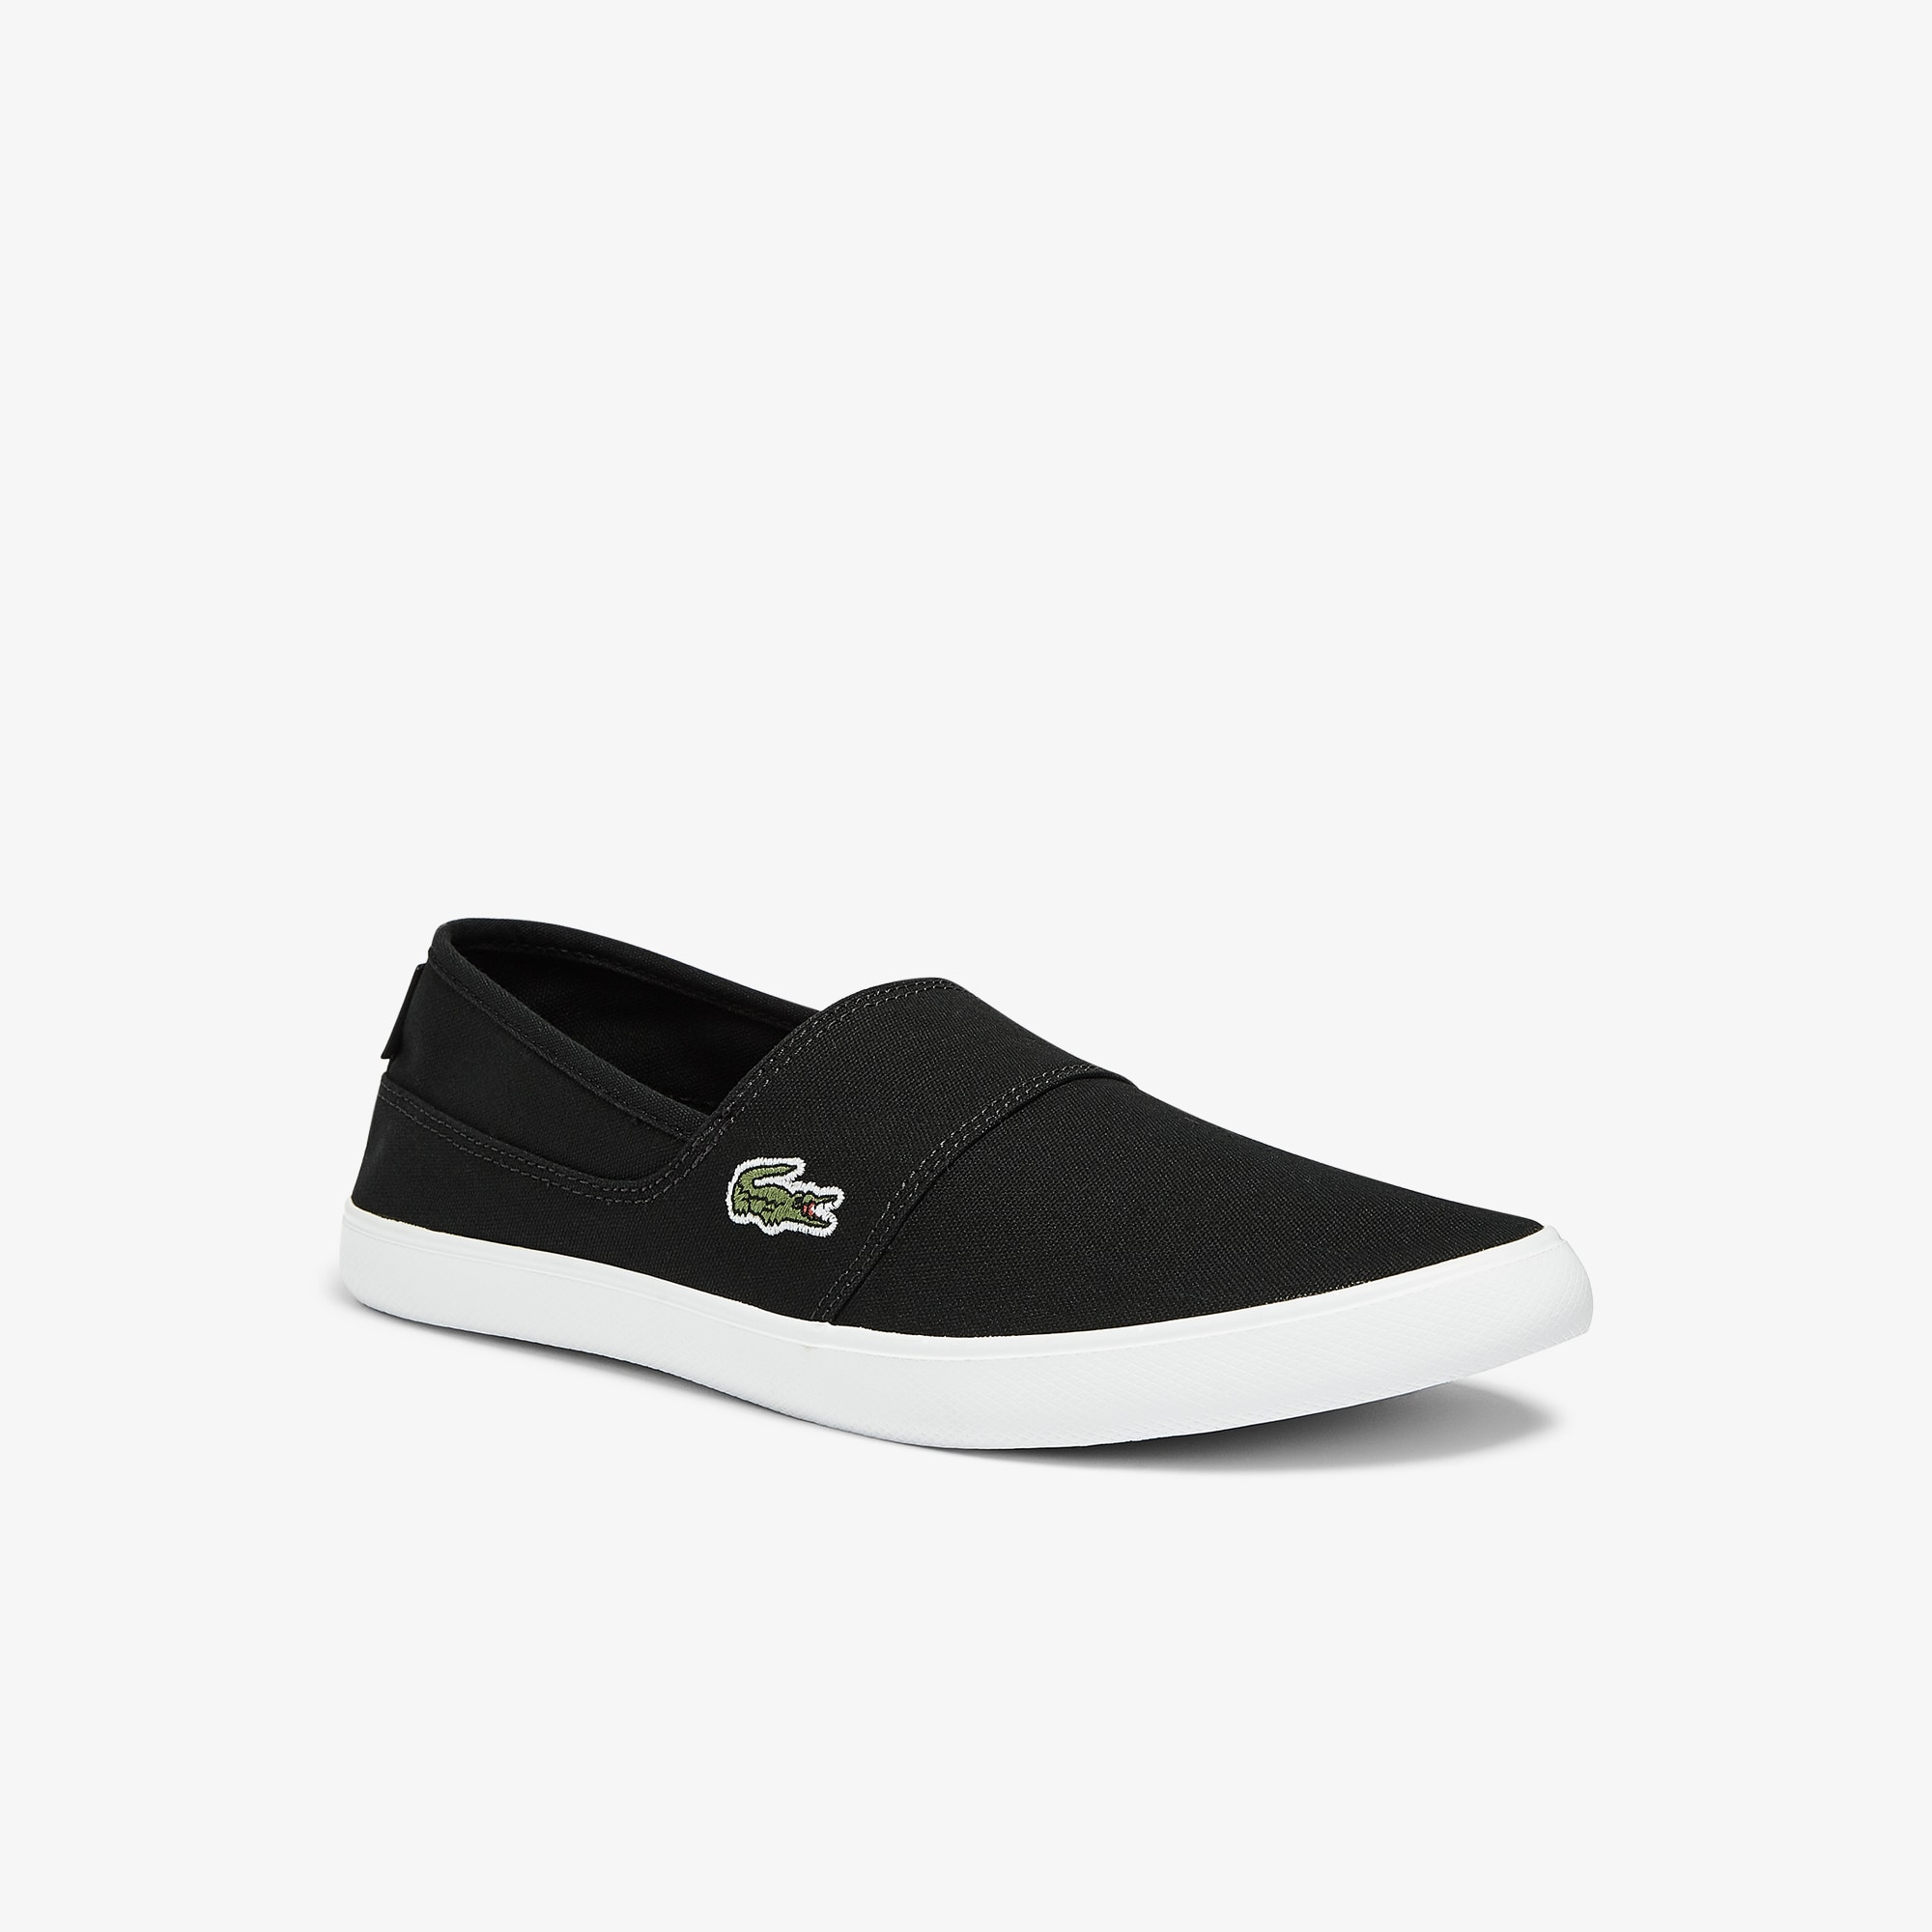 4a3185becdaa3f Men s Marice Canvas Slip-ons